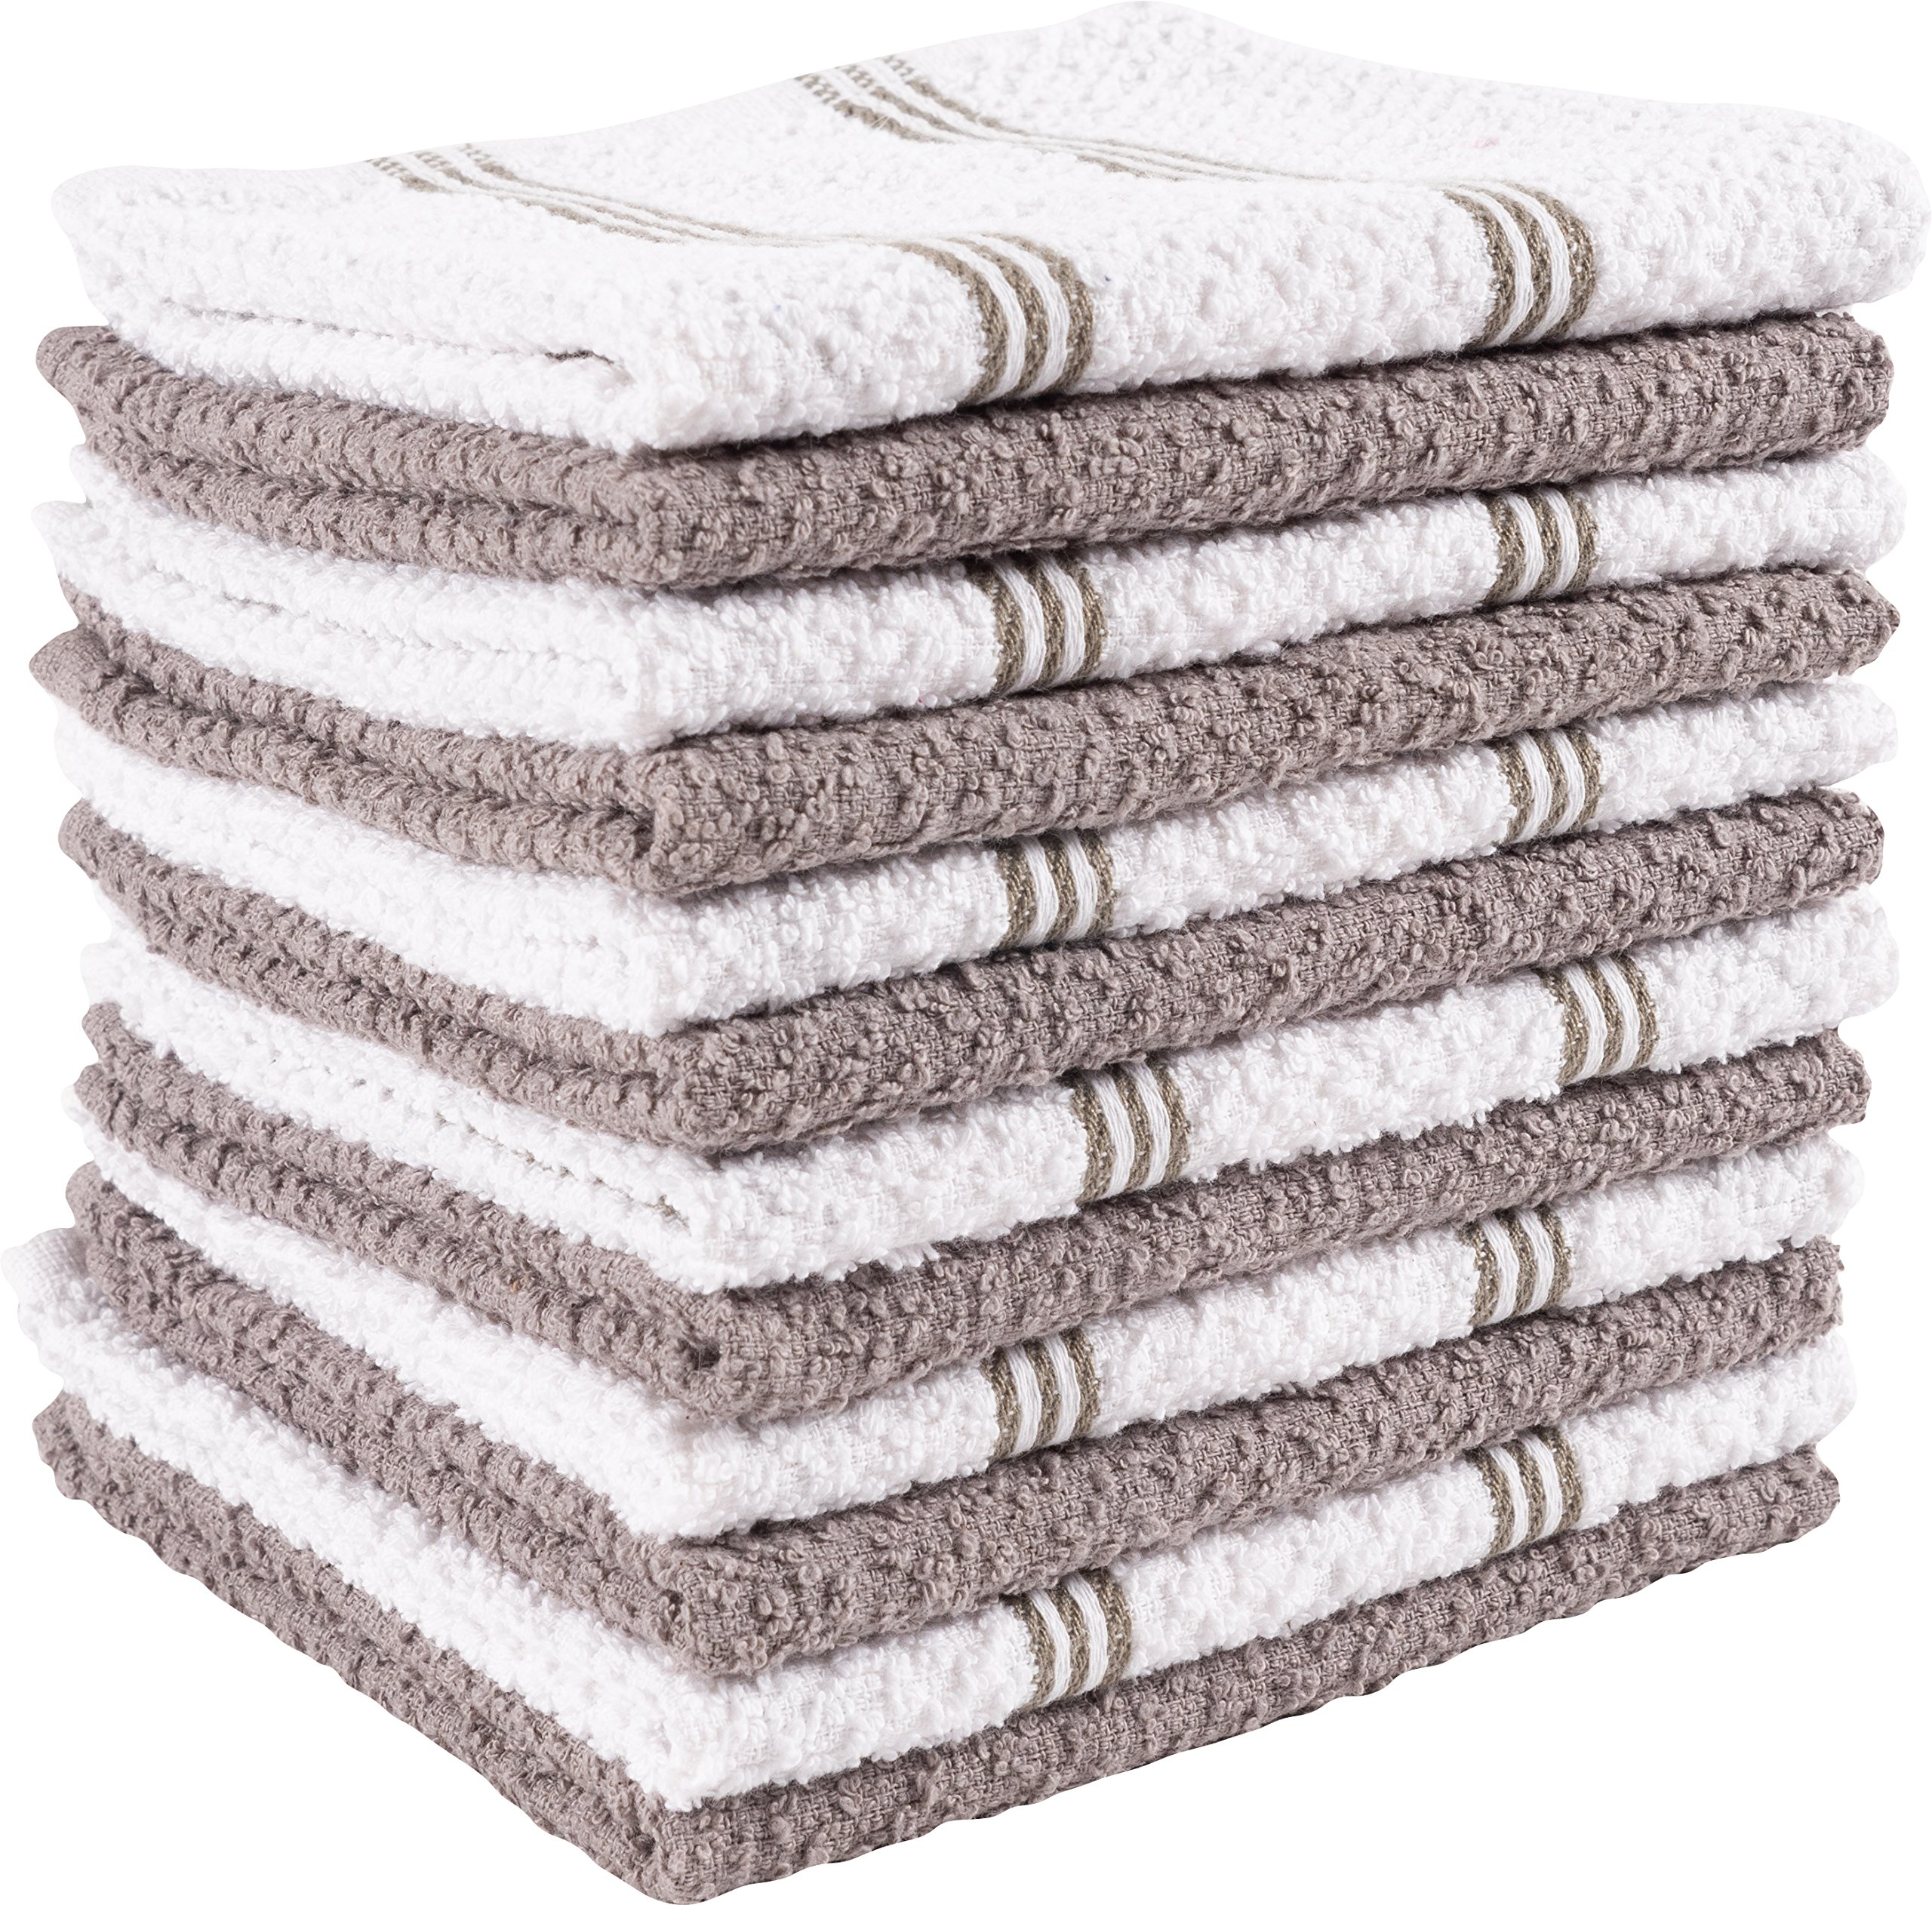 KAF Home Pantry Piedmont Dish Cloths (Set of 12, 12x12 inches), 100% Cotton, Ultra Absorbent Terry Towels - Pewter